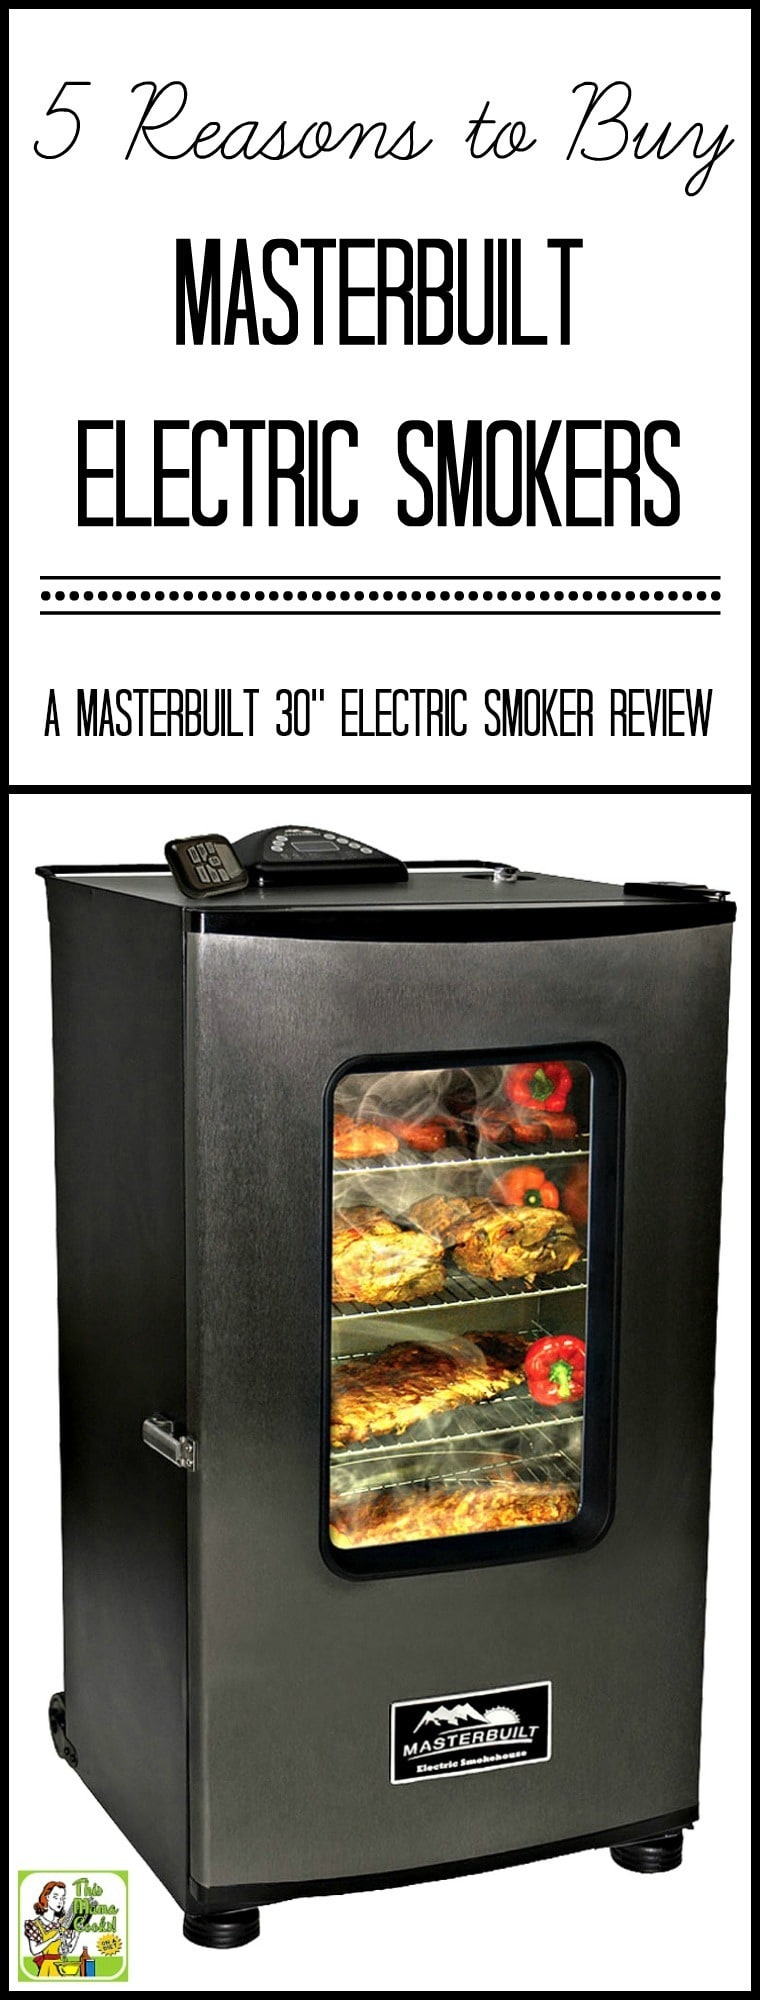 5 Reasons to Buy Masterbuilt Electric Smokers–a Masterbuilt 30